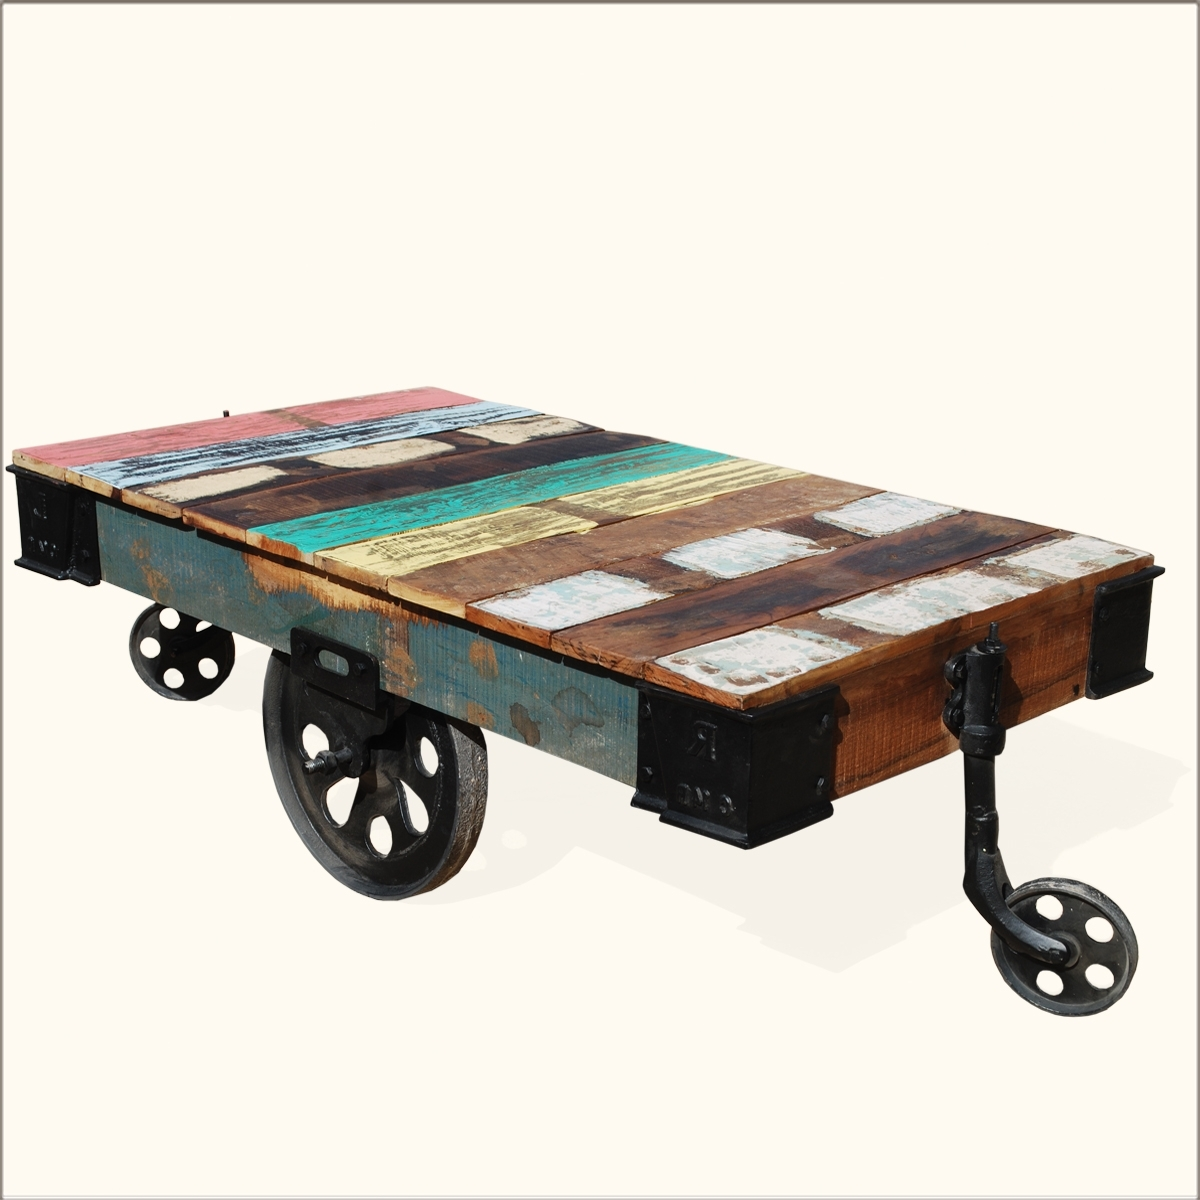 Well Known Iron Wood Coffee Tables With Wheels Pertaining To Rustic Assorted Color Wooden Coffee Table With Black Metal Wheels Of (View 19 of 20)